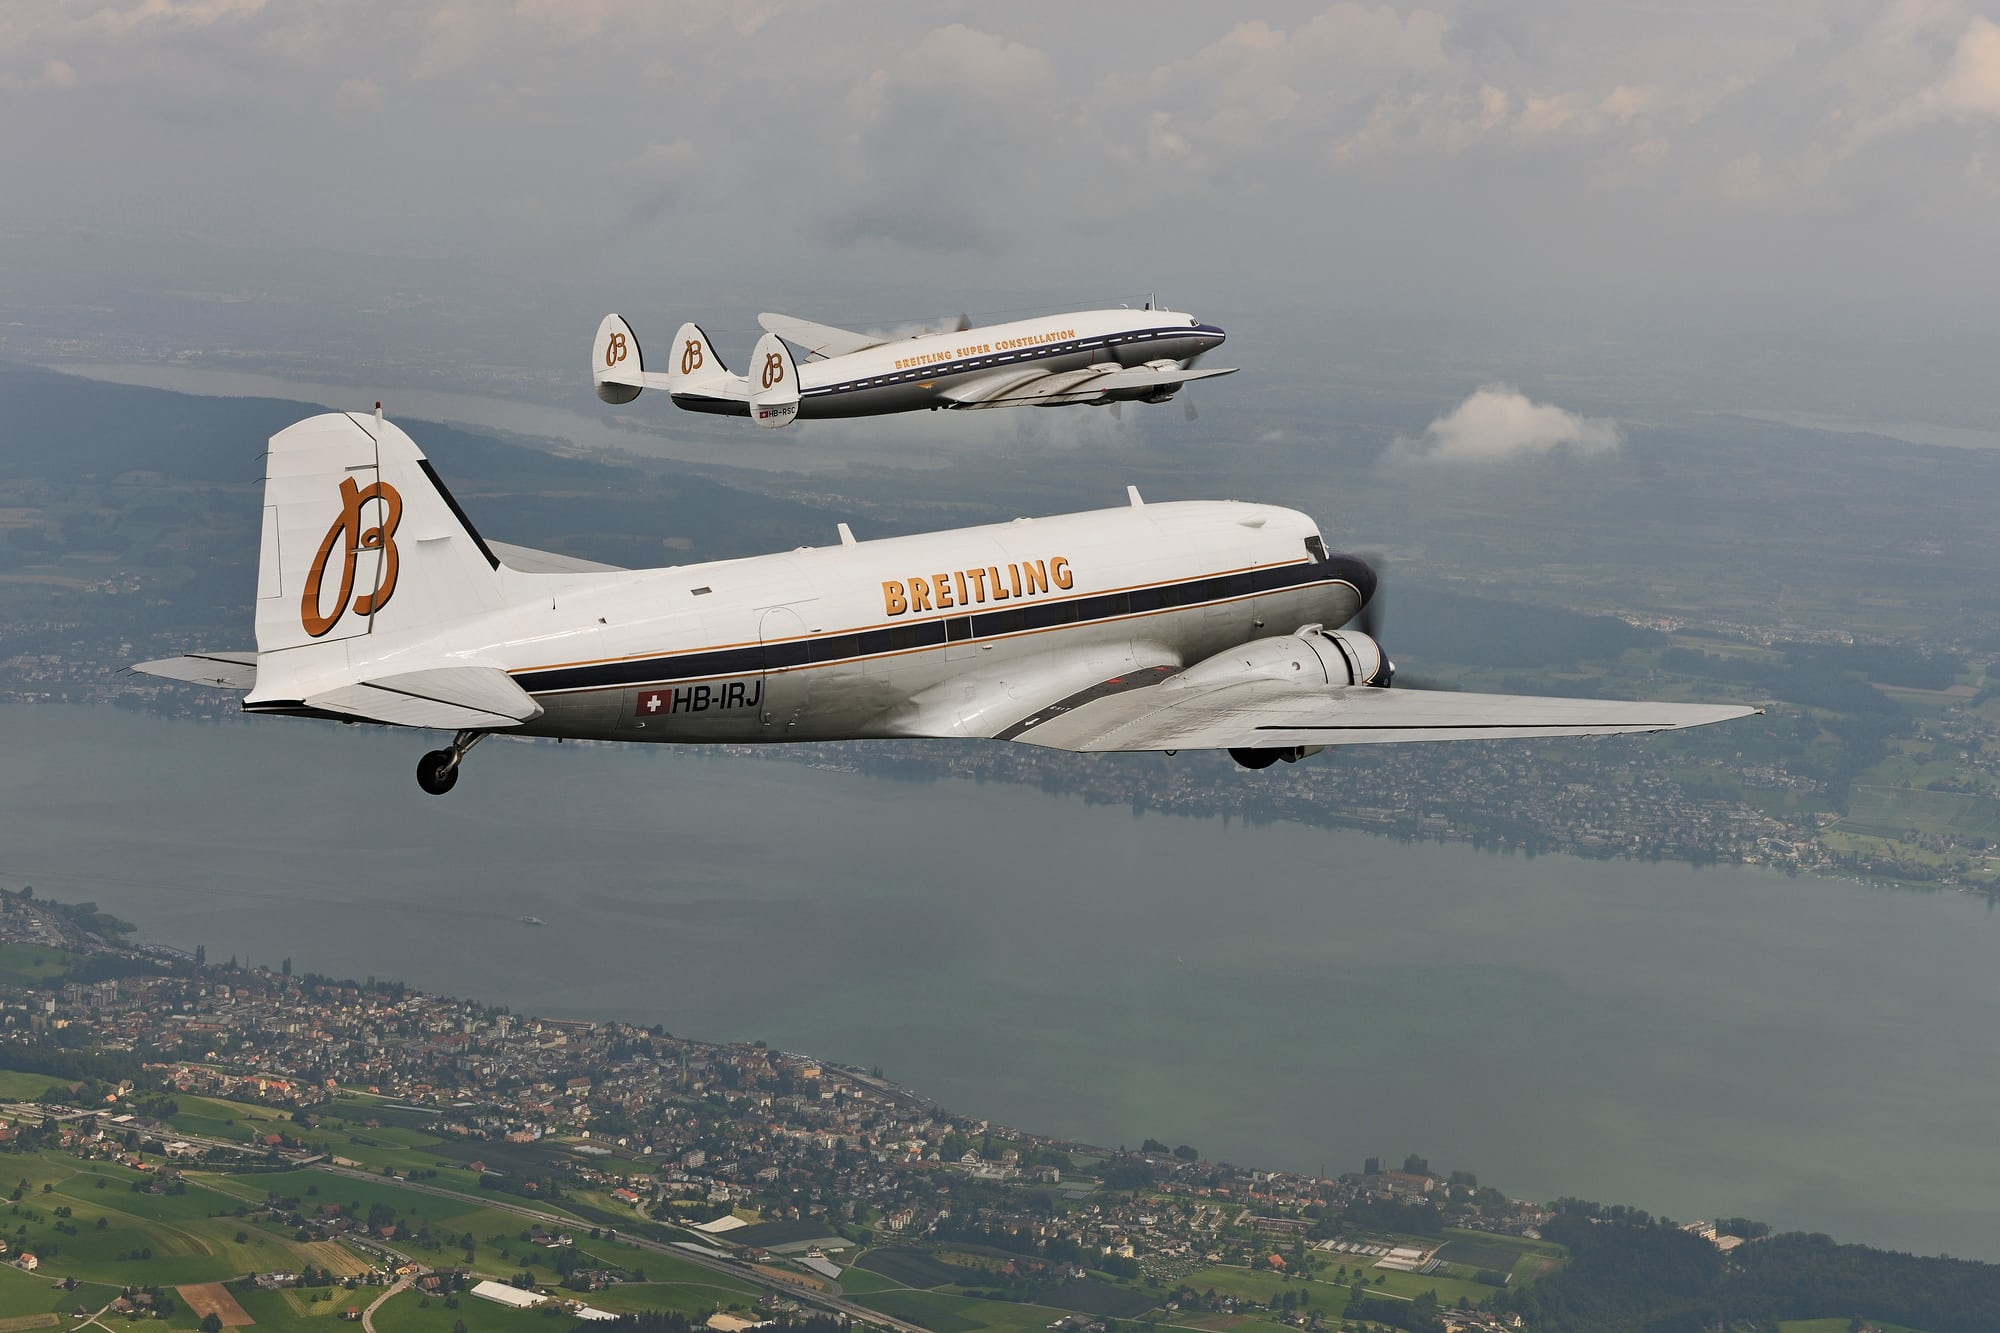 breitling dc-3 and breitling constellation Dispatches: Breitling's DC-3 To Become Oldest Aircraft Ever To Circle The Earth Dispatches: Breitling's DC-3 To Become Oldest Aircraft Ever To Circle The Earth Breitling DC 3  Breitling Super Constellation